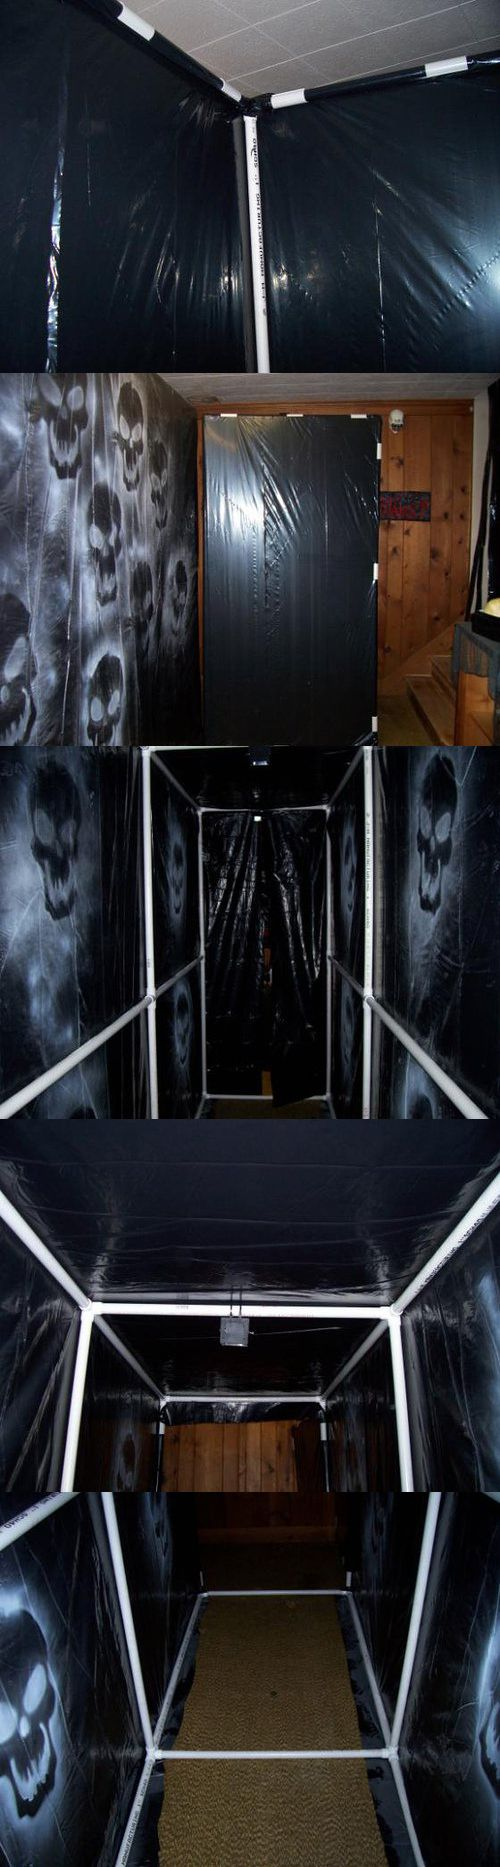 Haunt your home with PVC and Fire Retardant Black Plastic Sheeting! Then paint over it!!